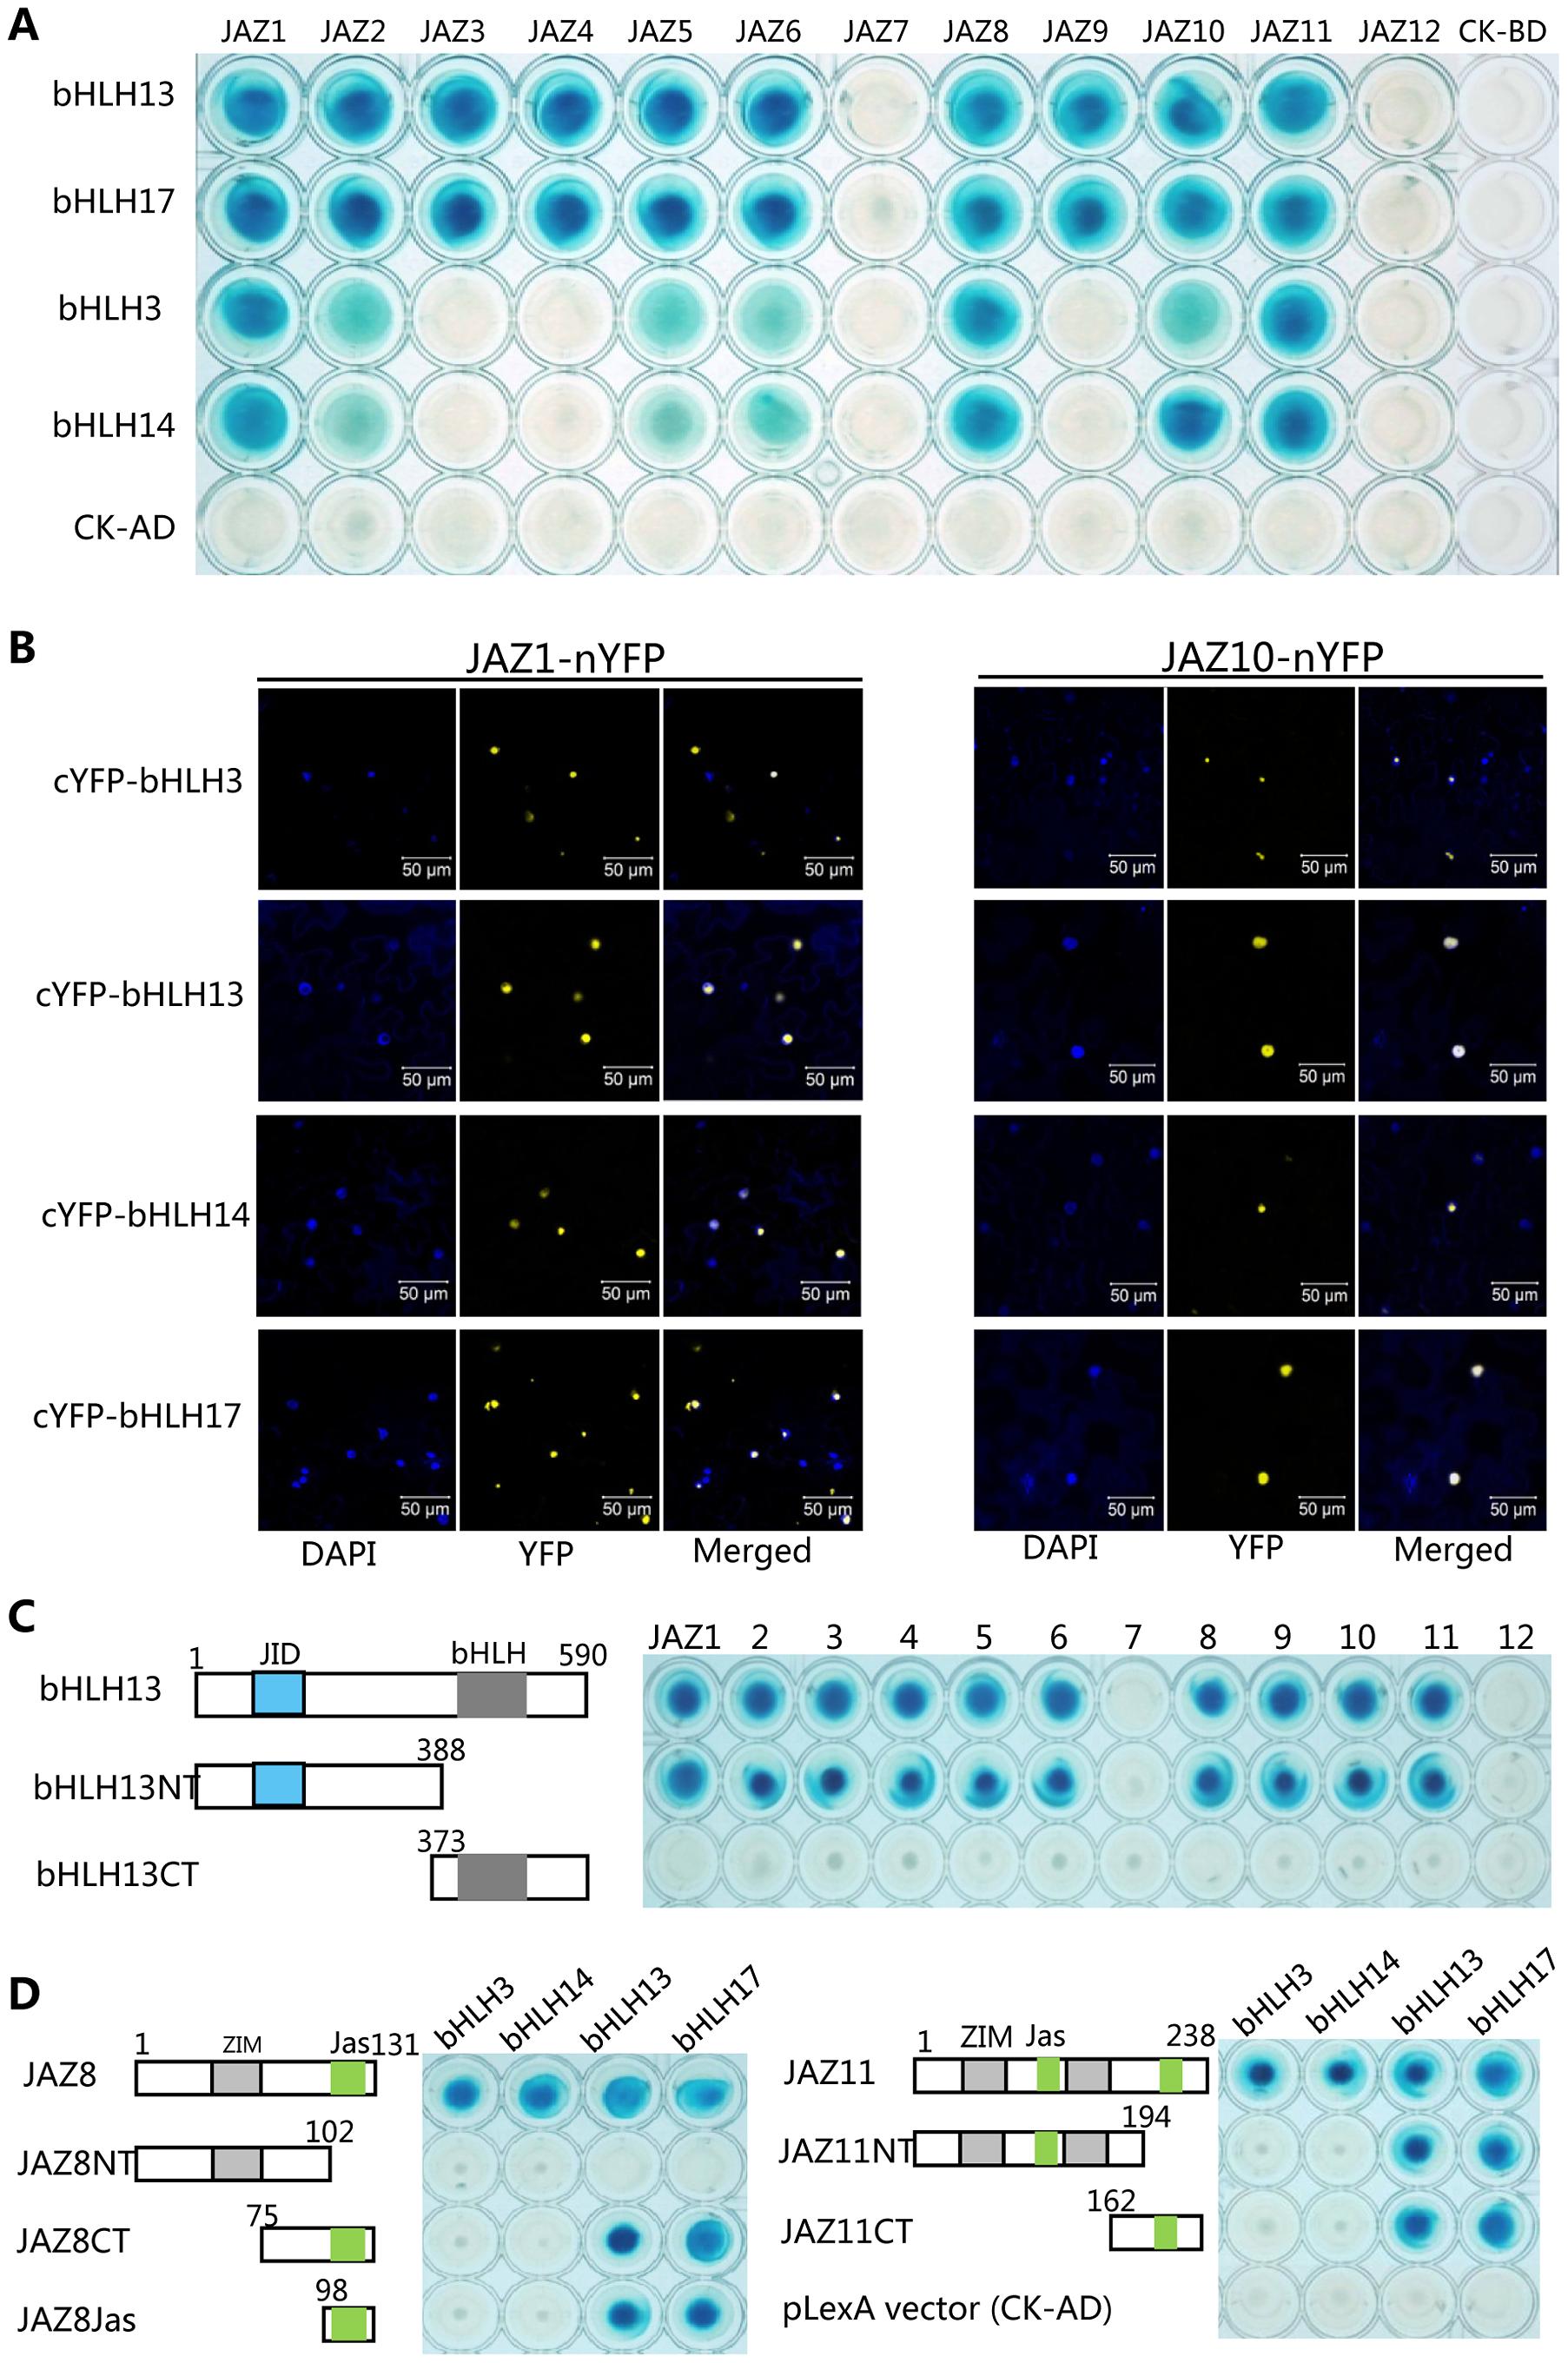 JAZ proteins interact with bHLH3, bHLH13, bHLH14 and bHLH17.